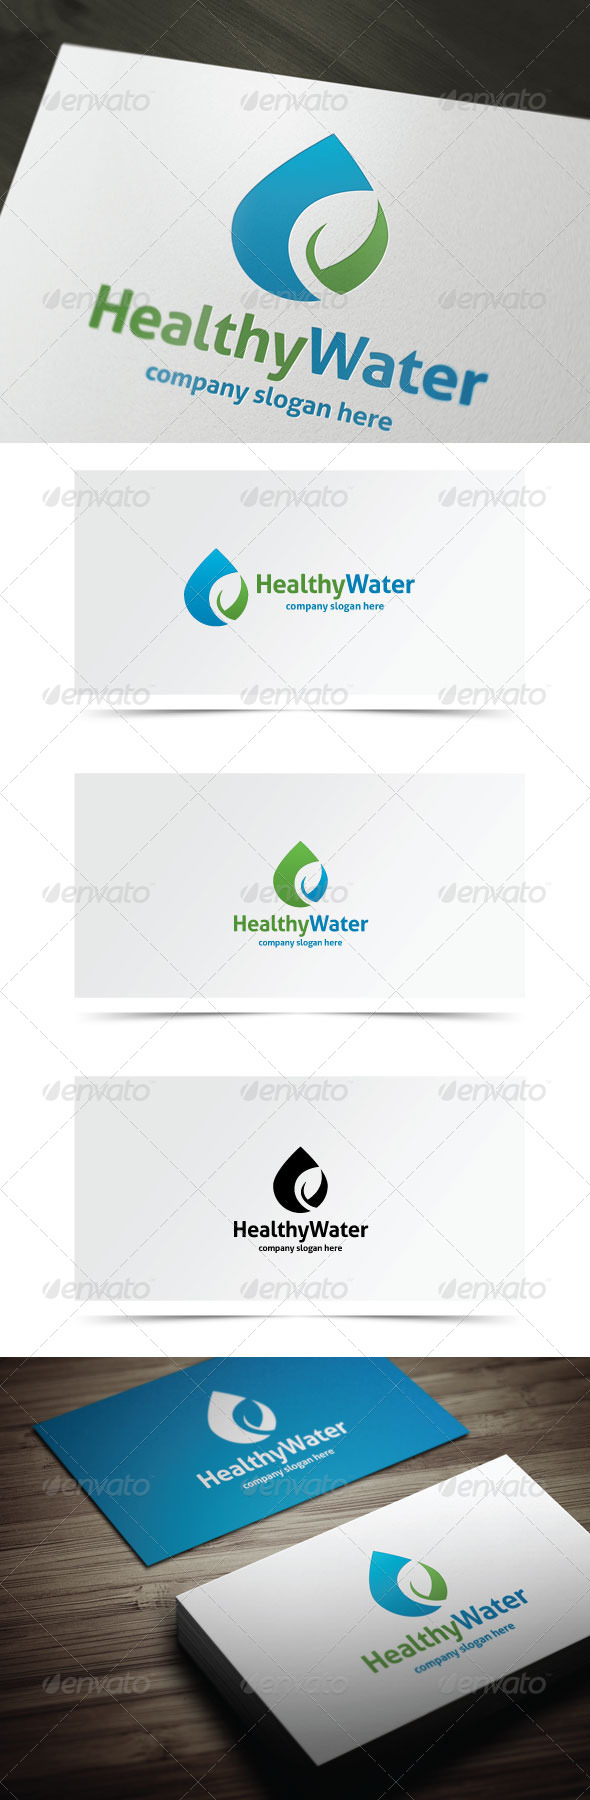 GraphicRiver Healthy Water 7743387